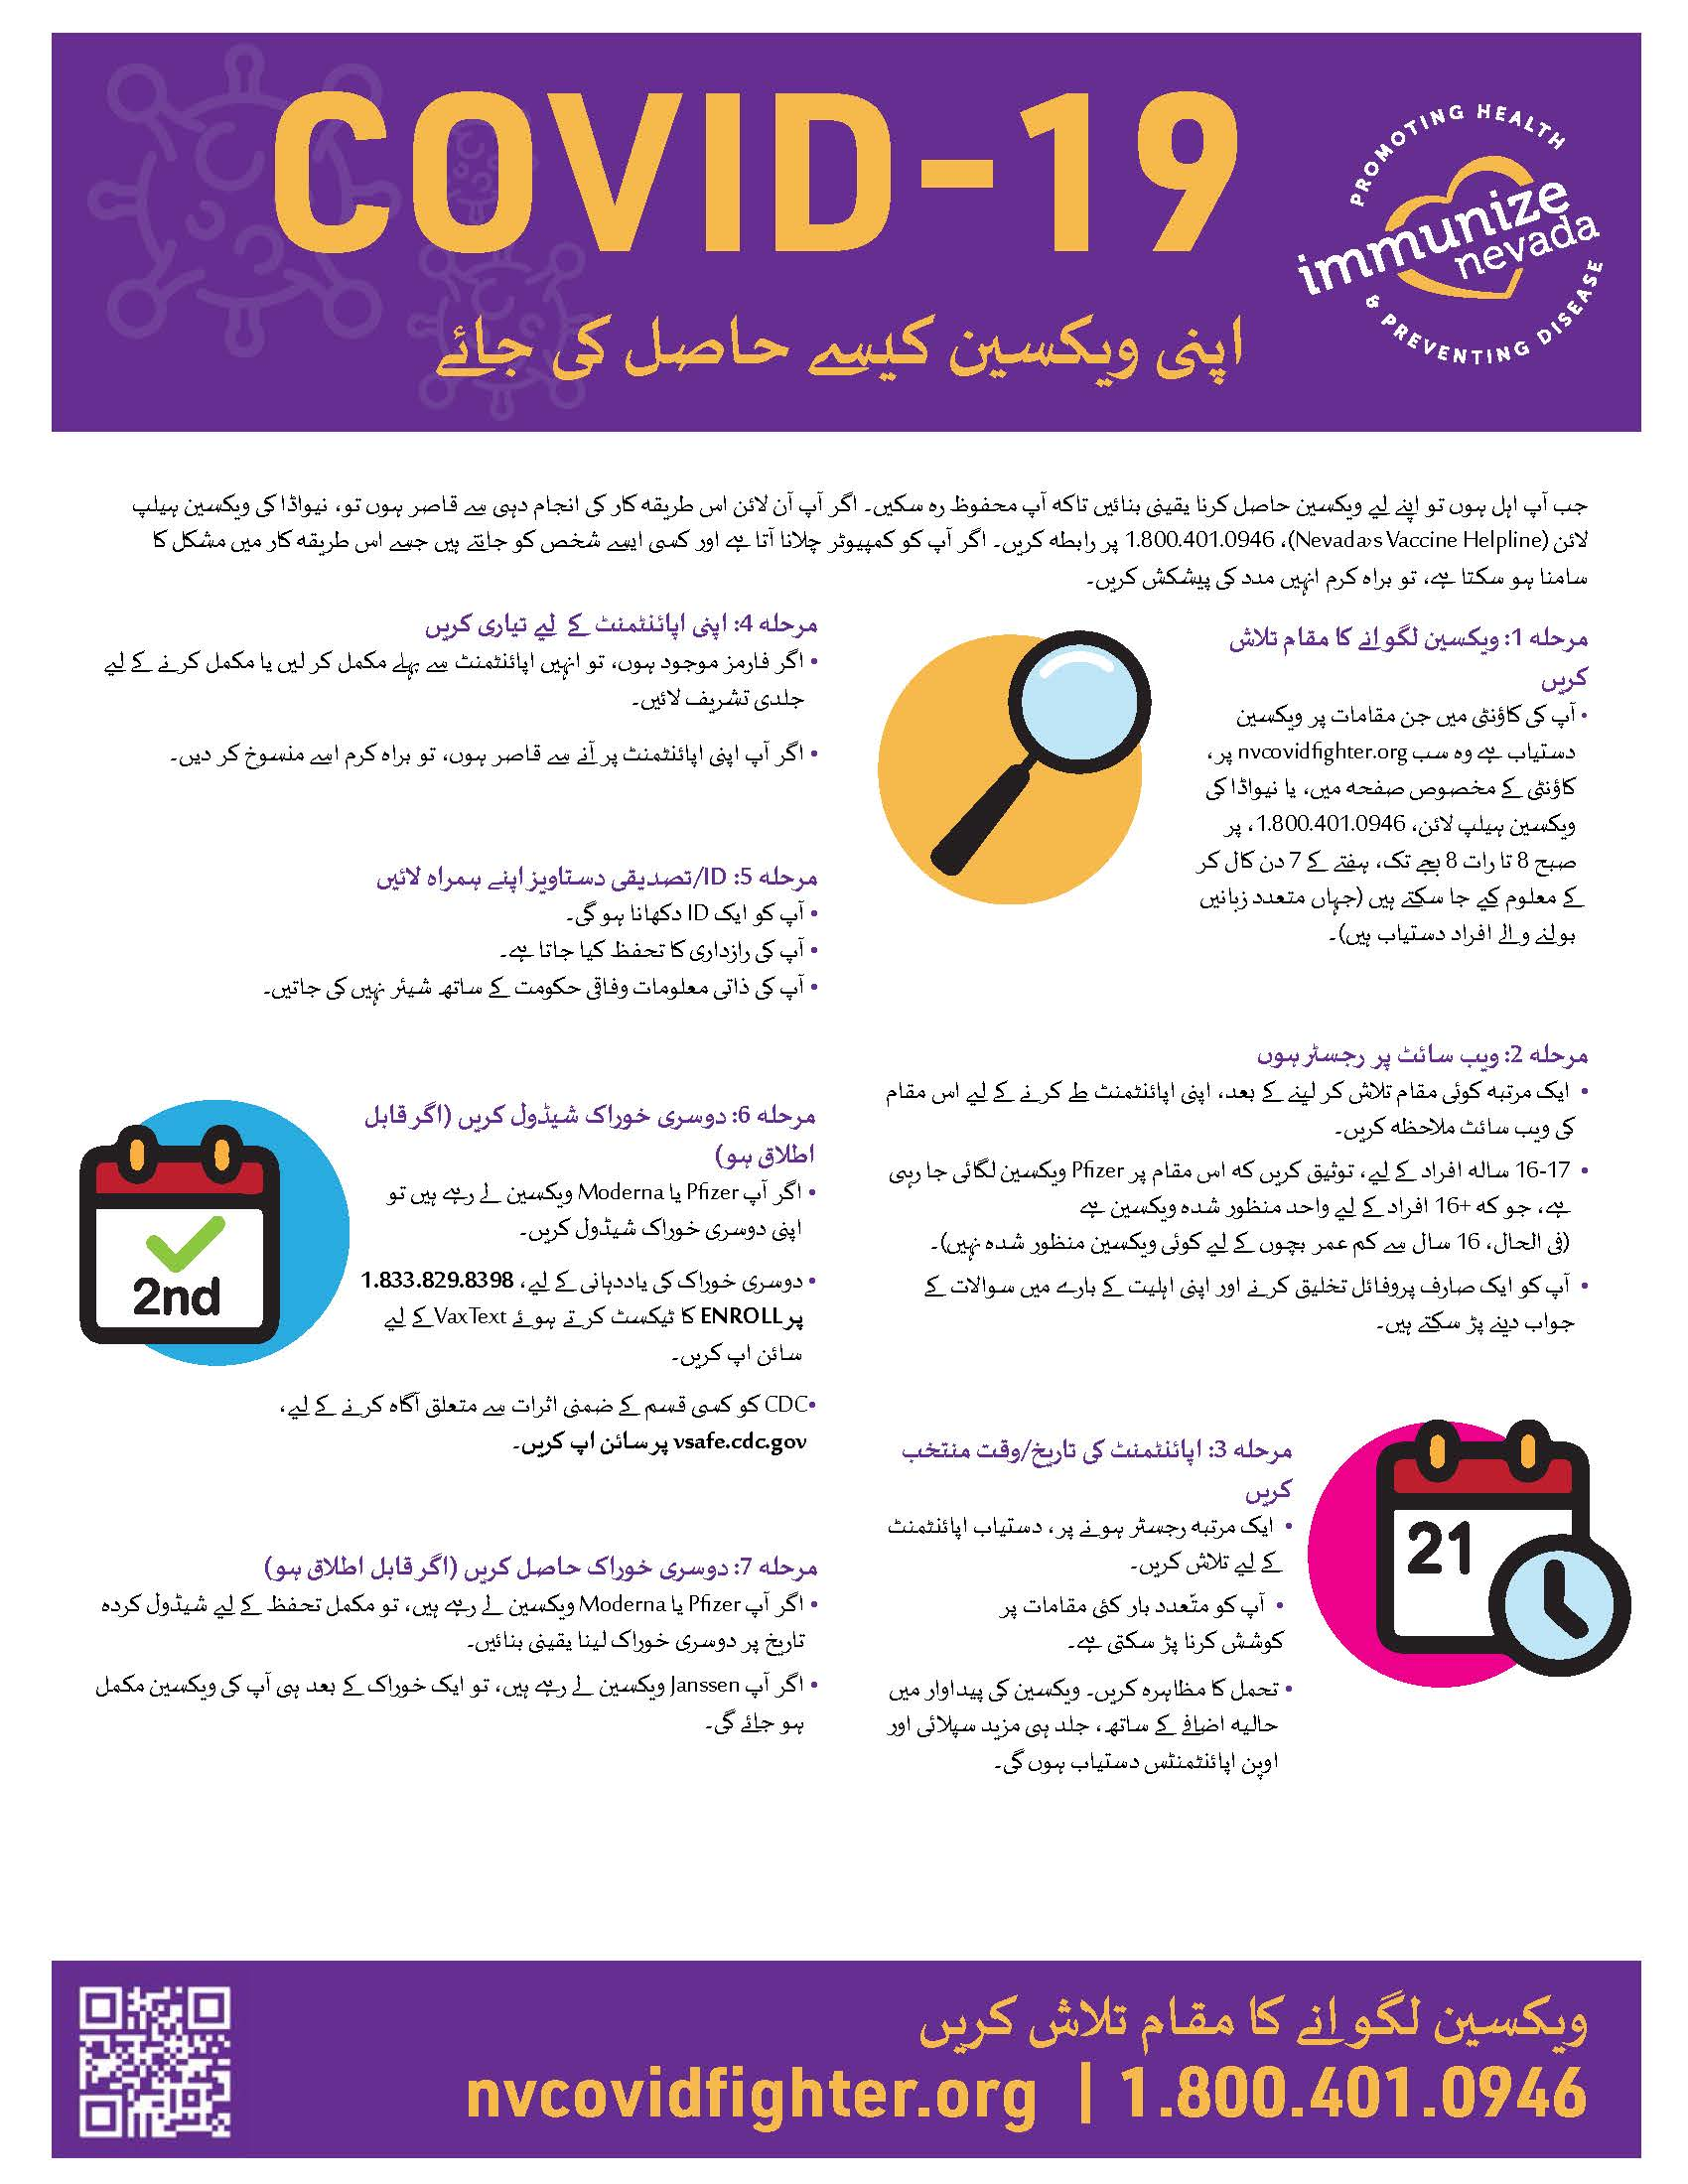 COVID-19 Vaccine Appointment Steps Flyer Urdu_v1